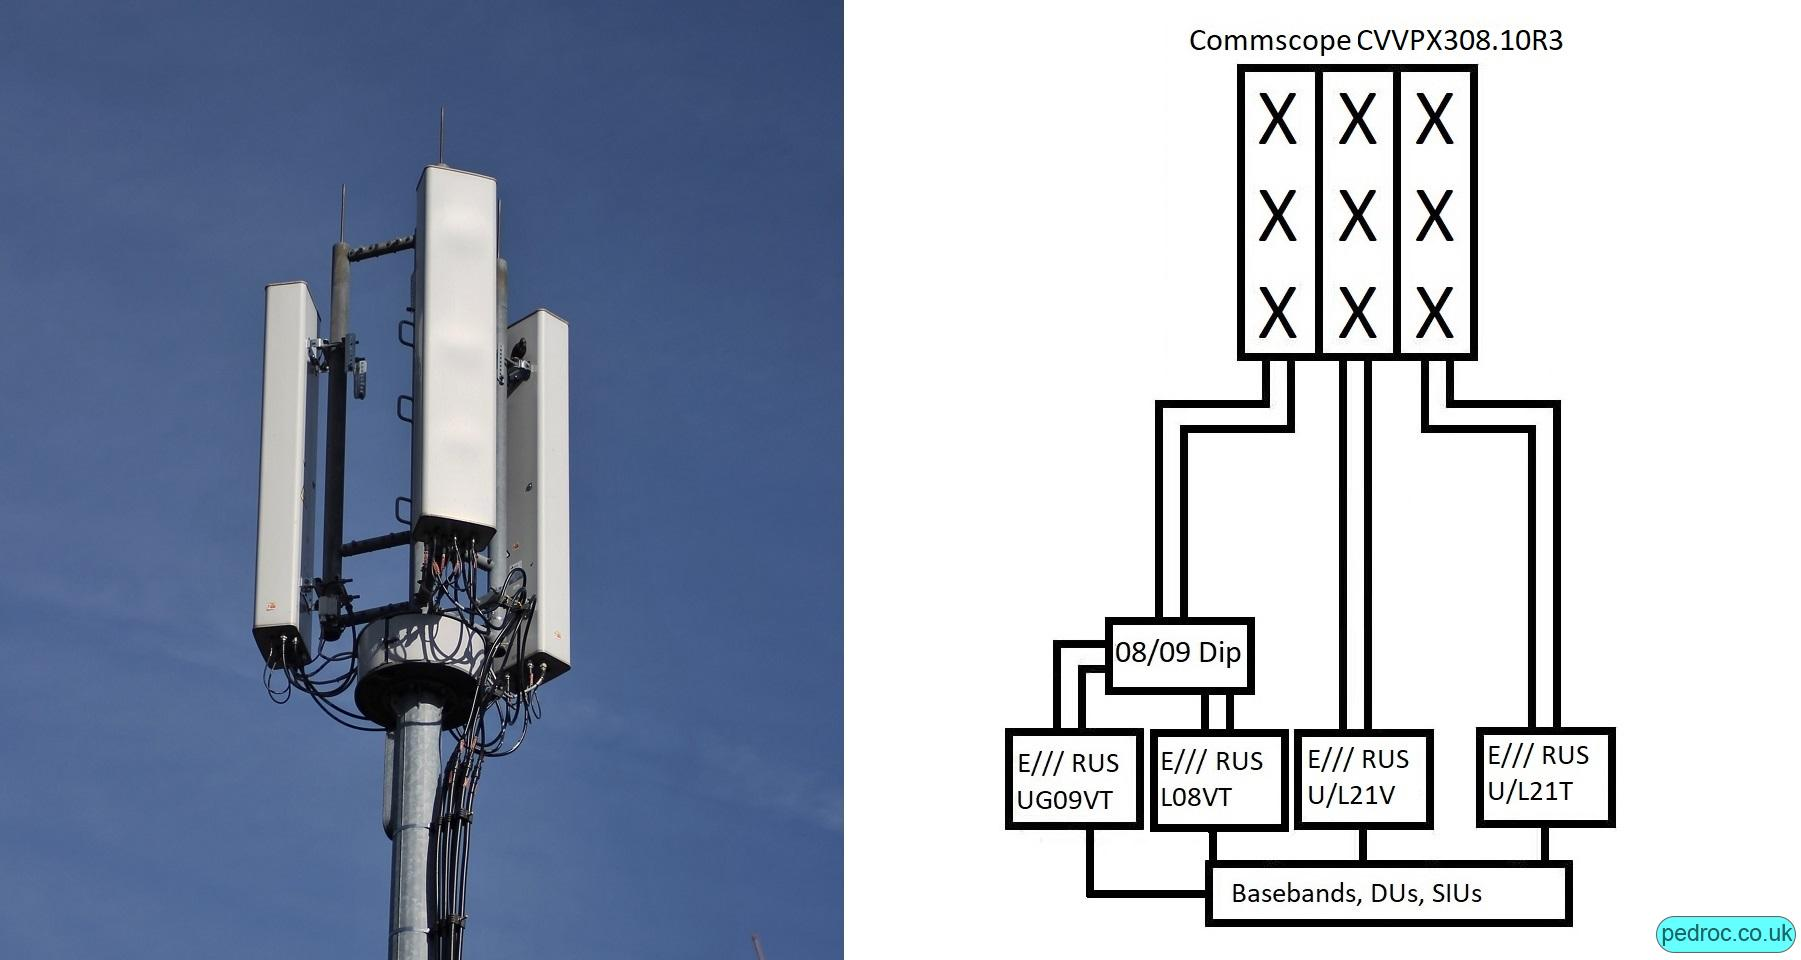 Medium capacity configuration with Commscope CVVPX308.10R3 antennas. Separate 2100MHz.